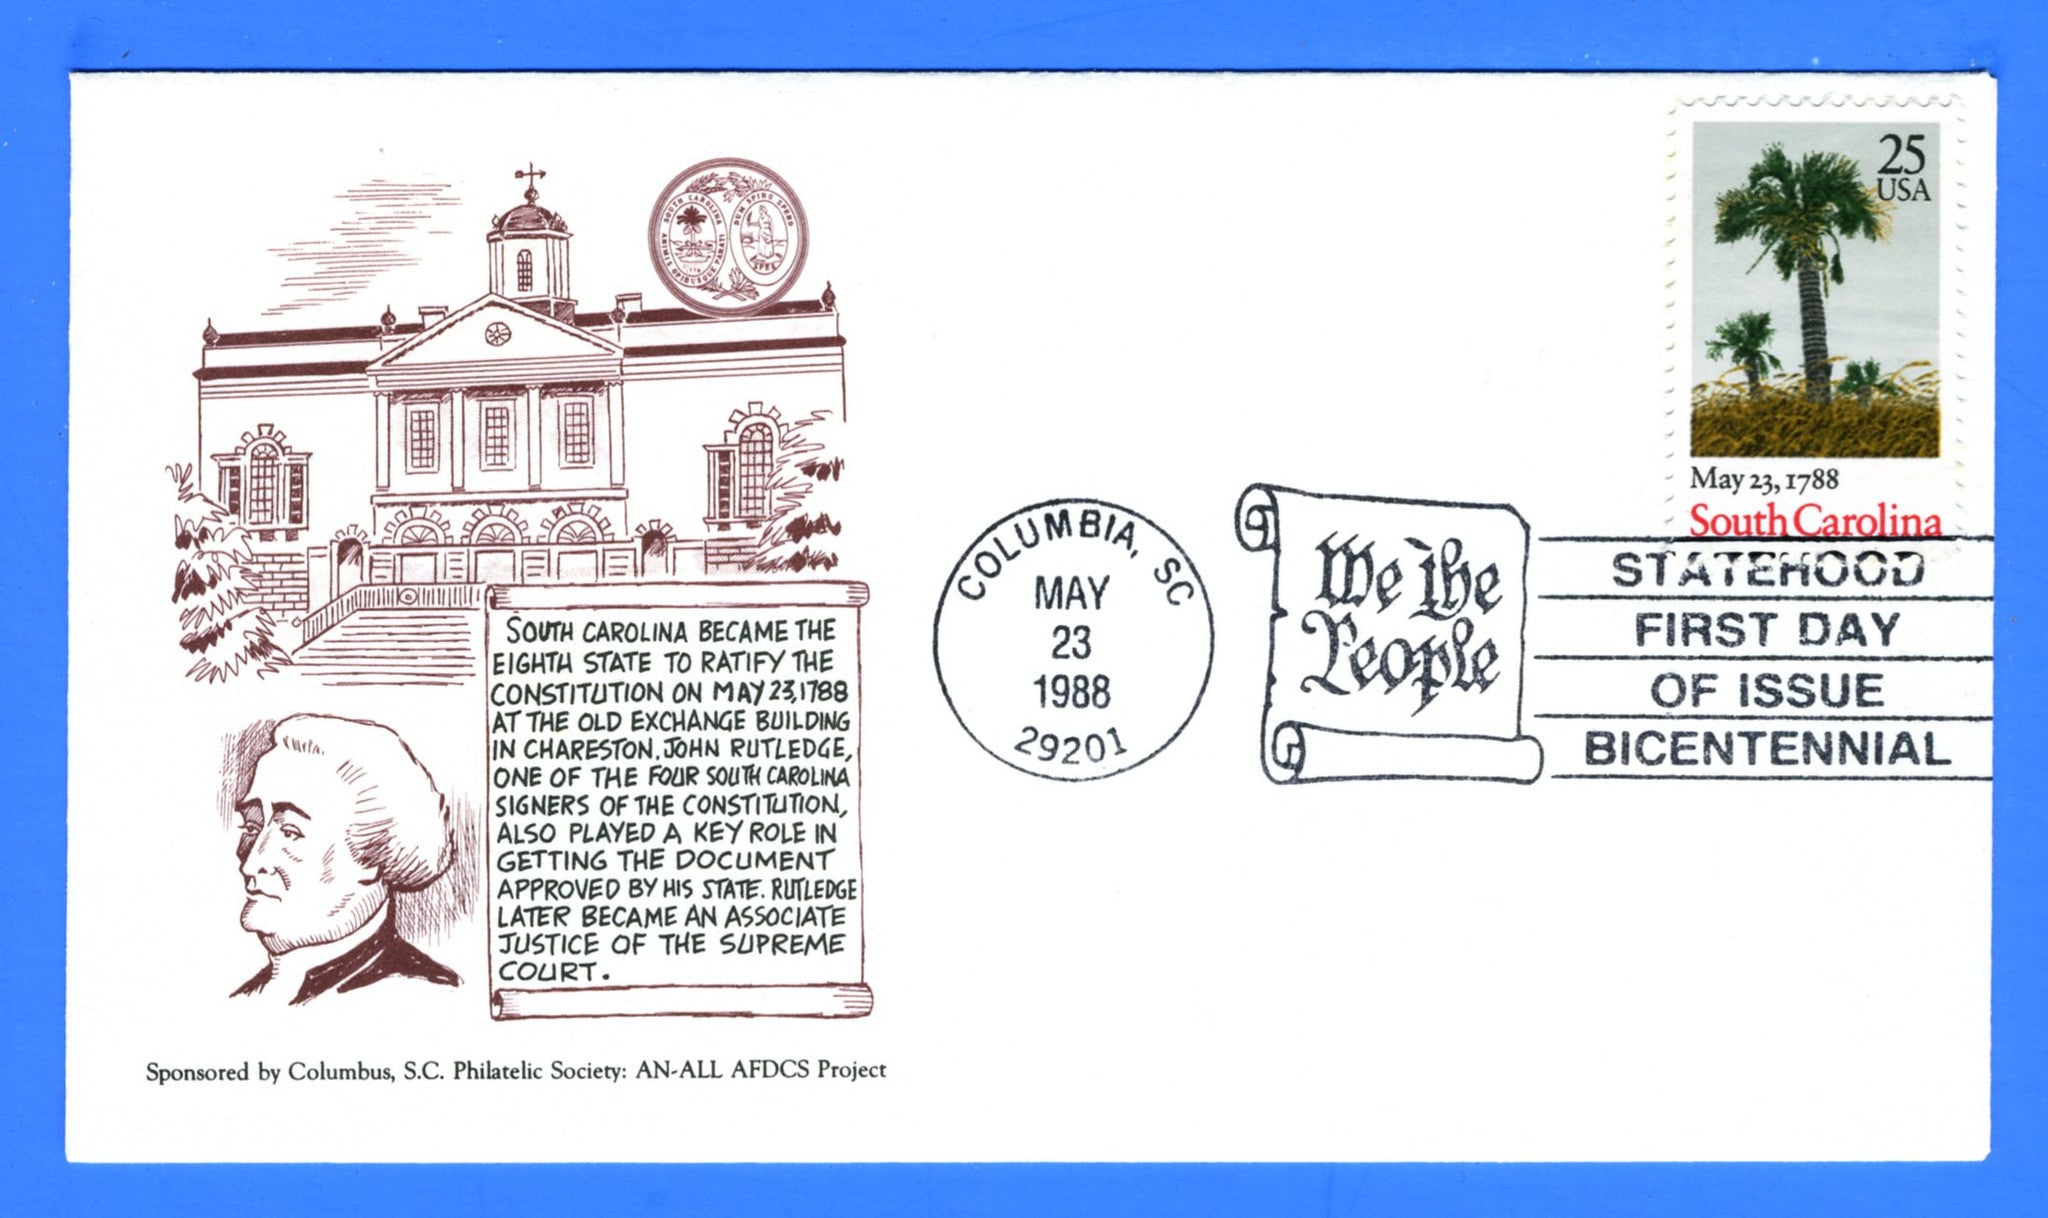 Scott 2343 25c South Carolina First Day Cover by LRC Cachets for the South Carolina Philtelic Society